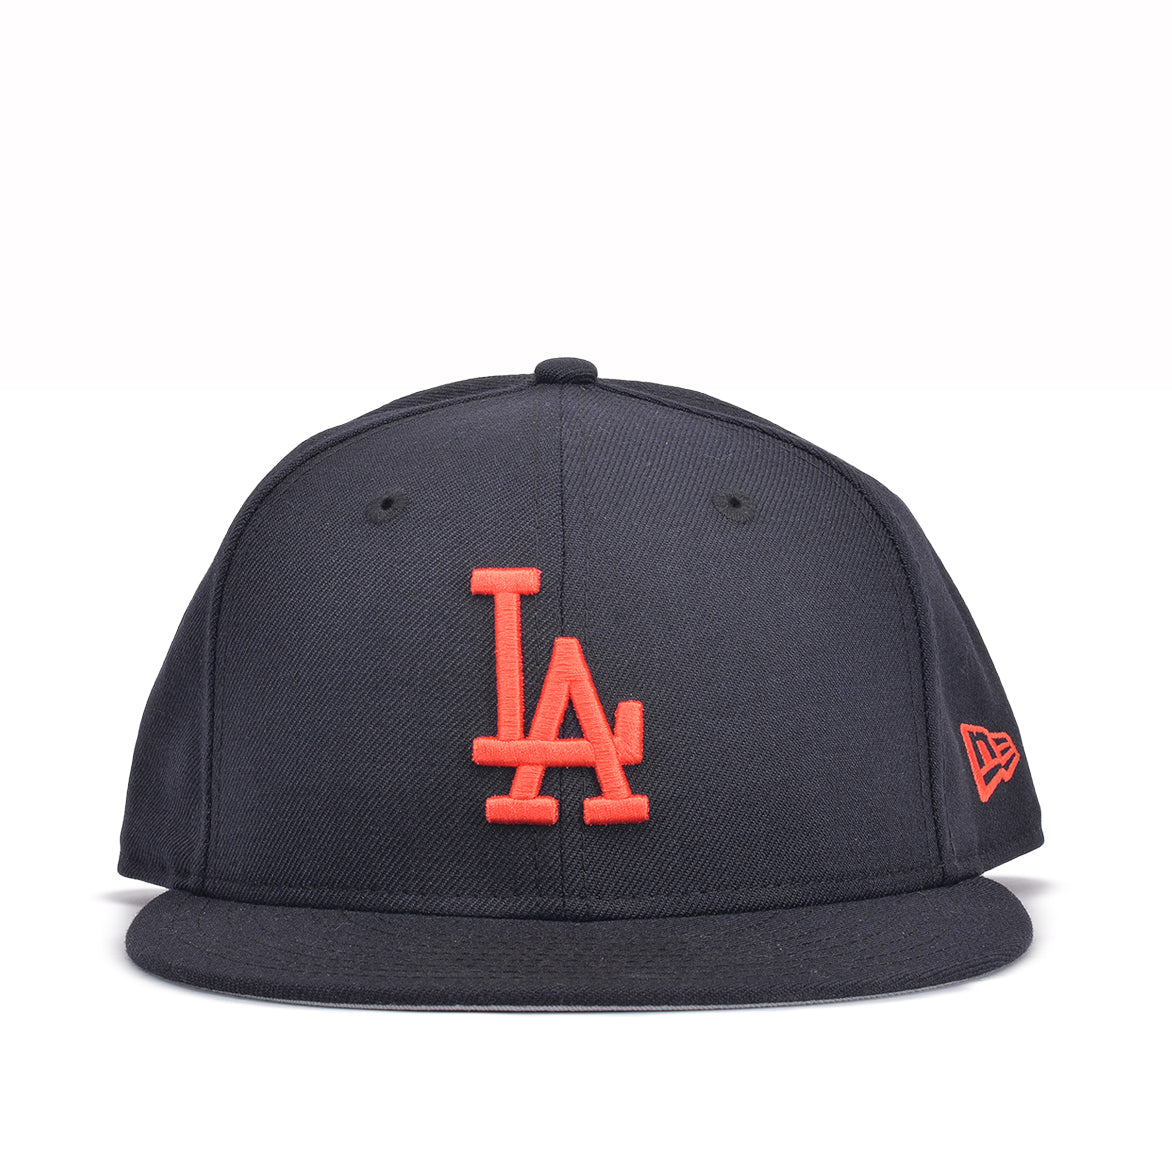 "CITY BLUE x NEW ERA 59FIFTY ""COLOR FLIP"" - DODGERS"